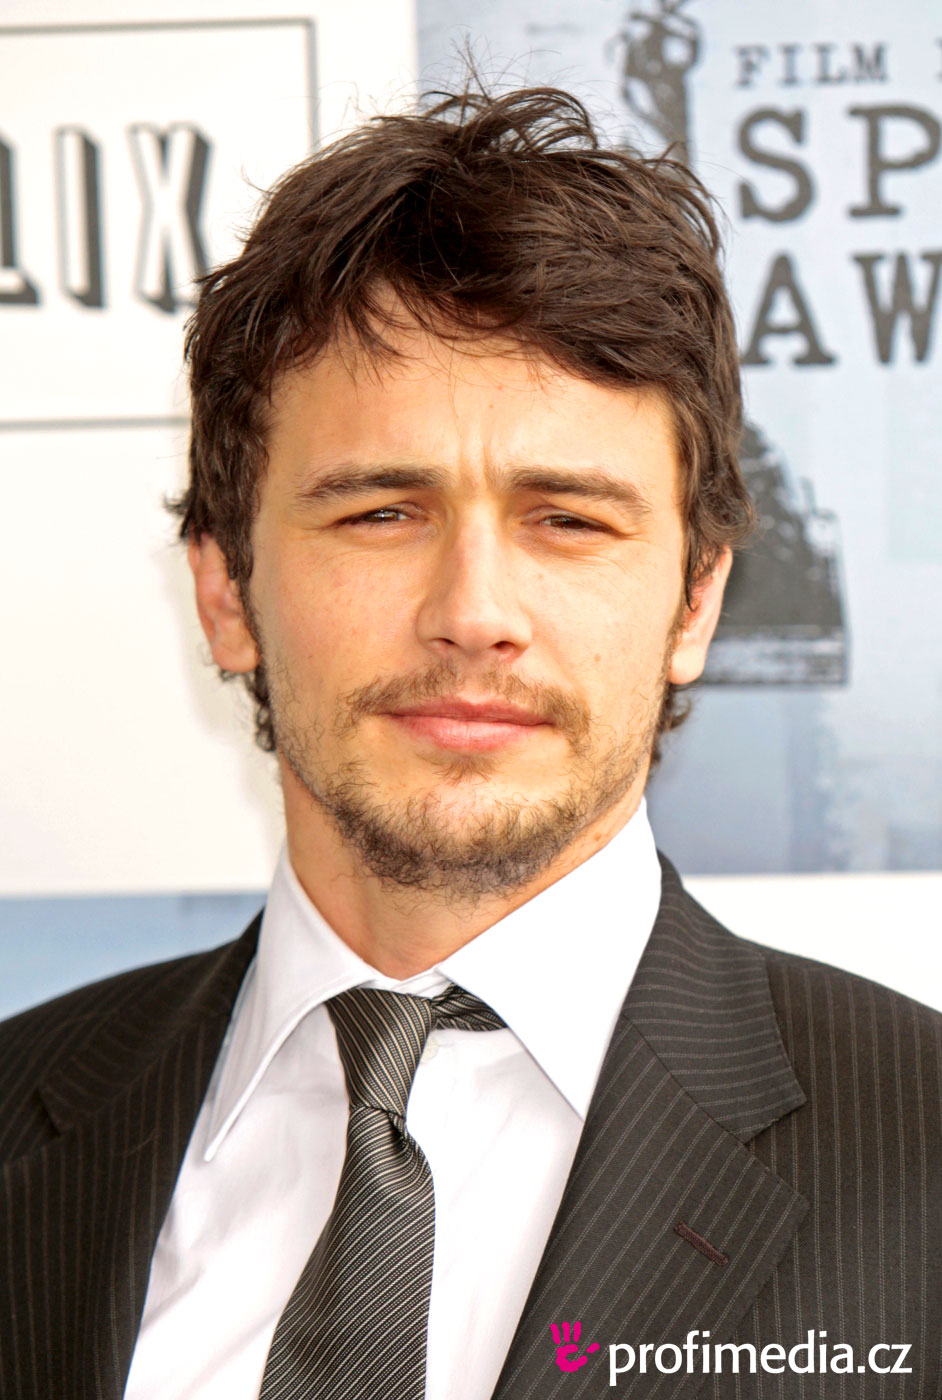 James Franco Hairstyle Easyhairstyler